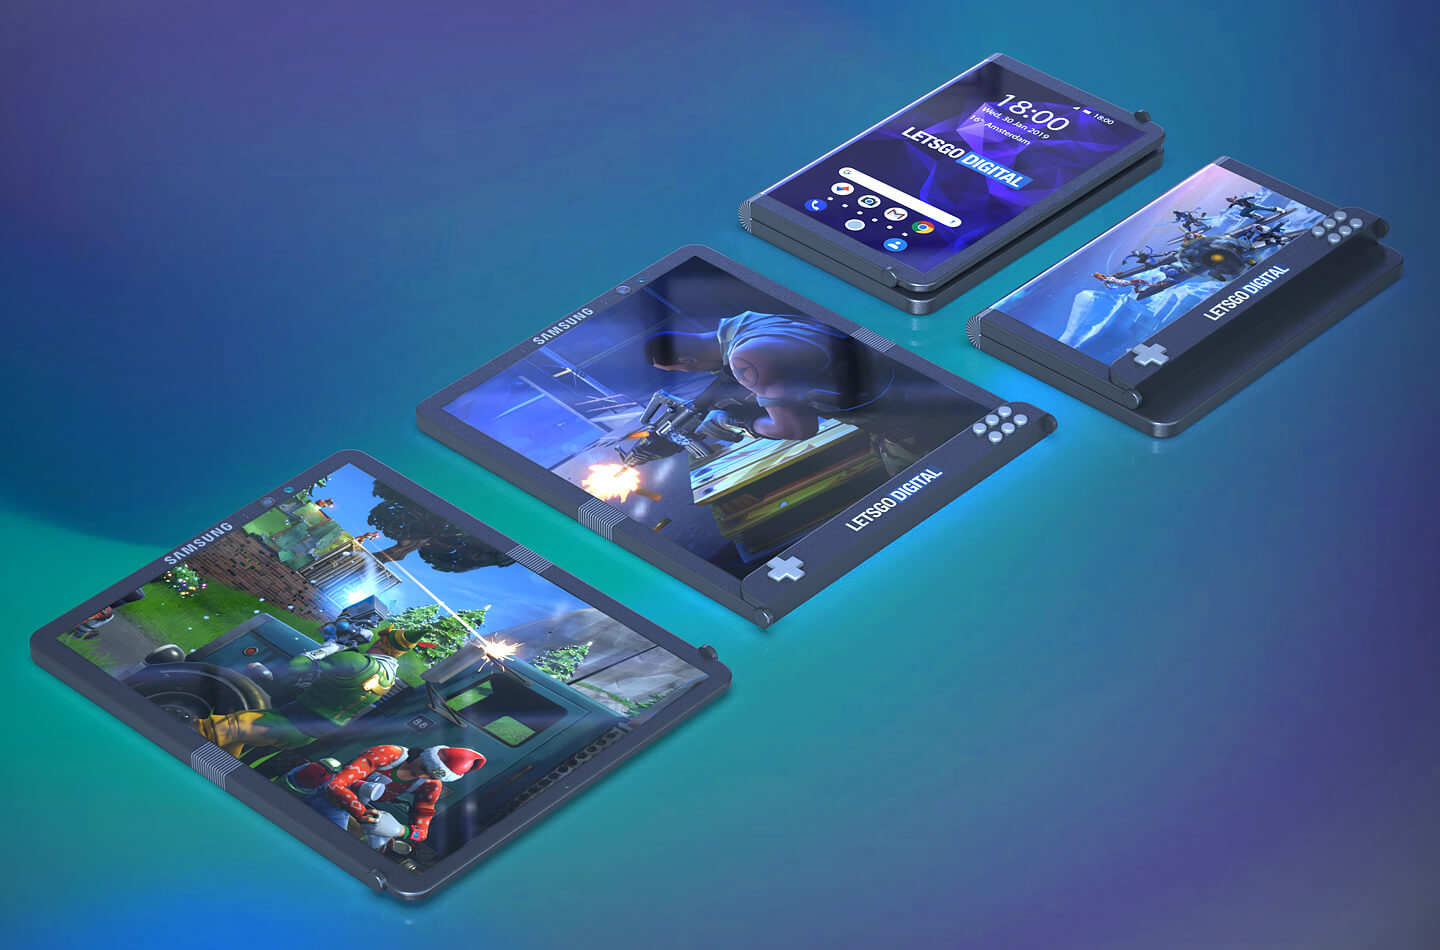 Samsung opvouwbare gaming smartphone